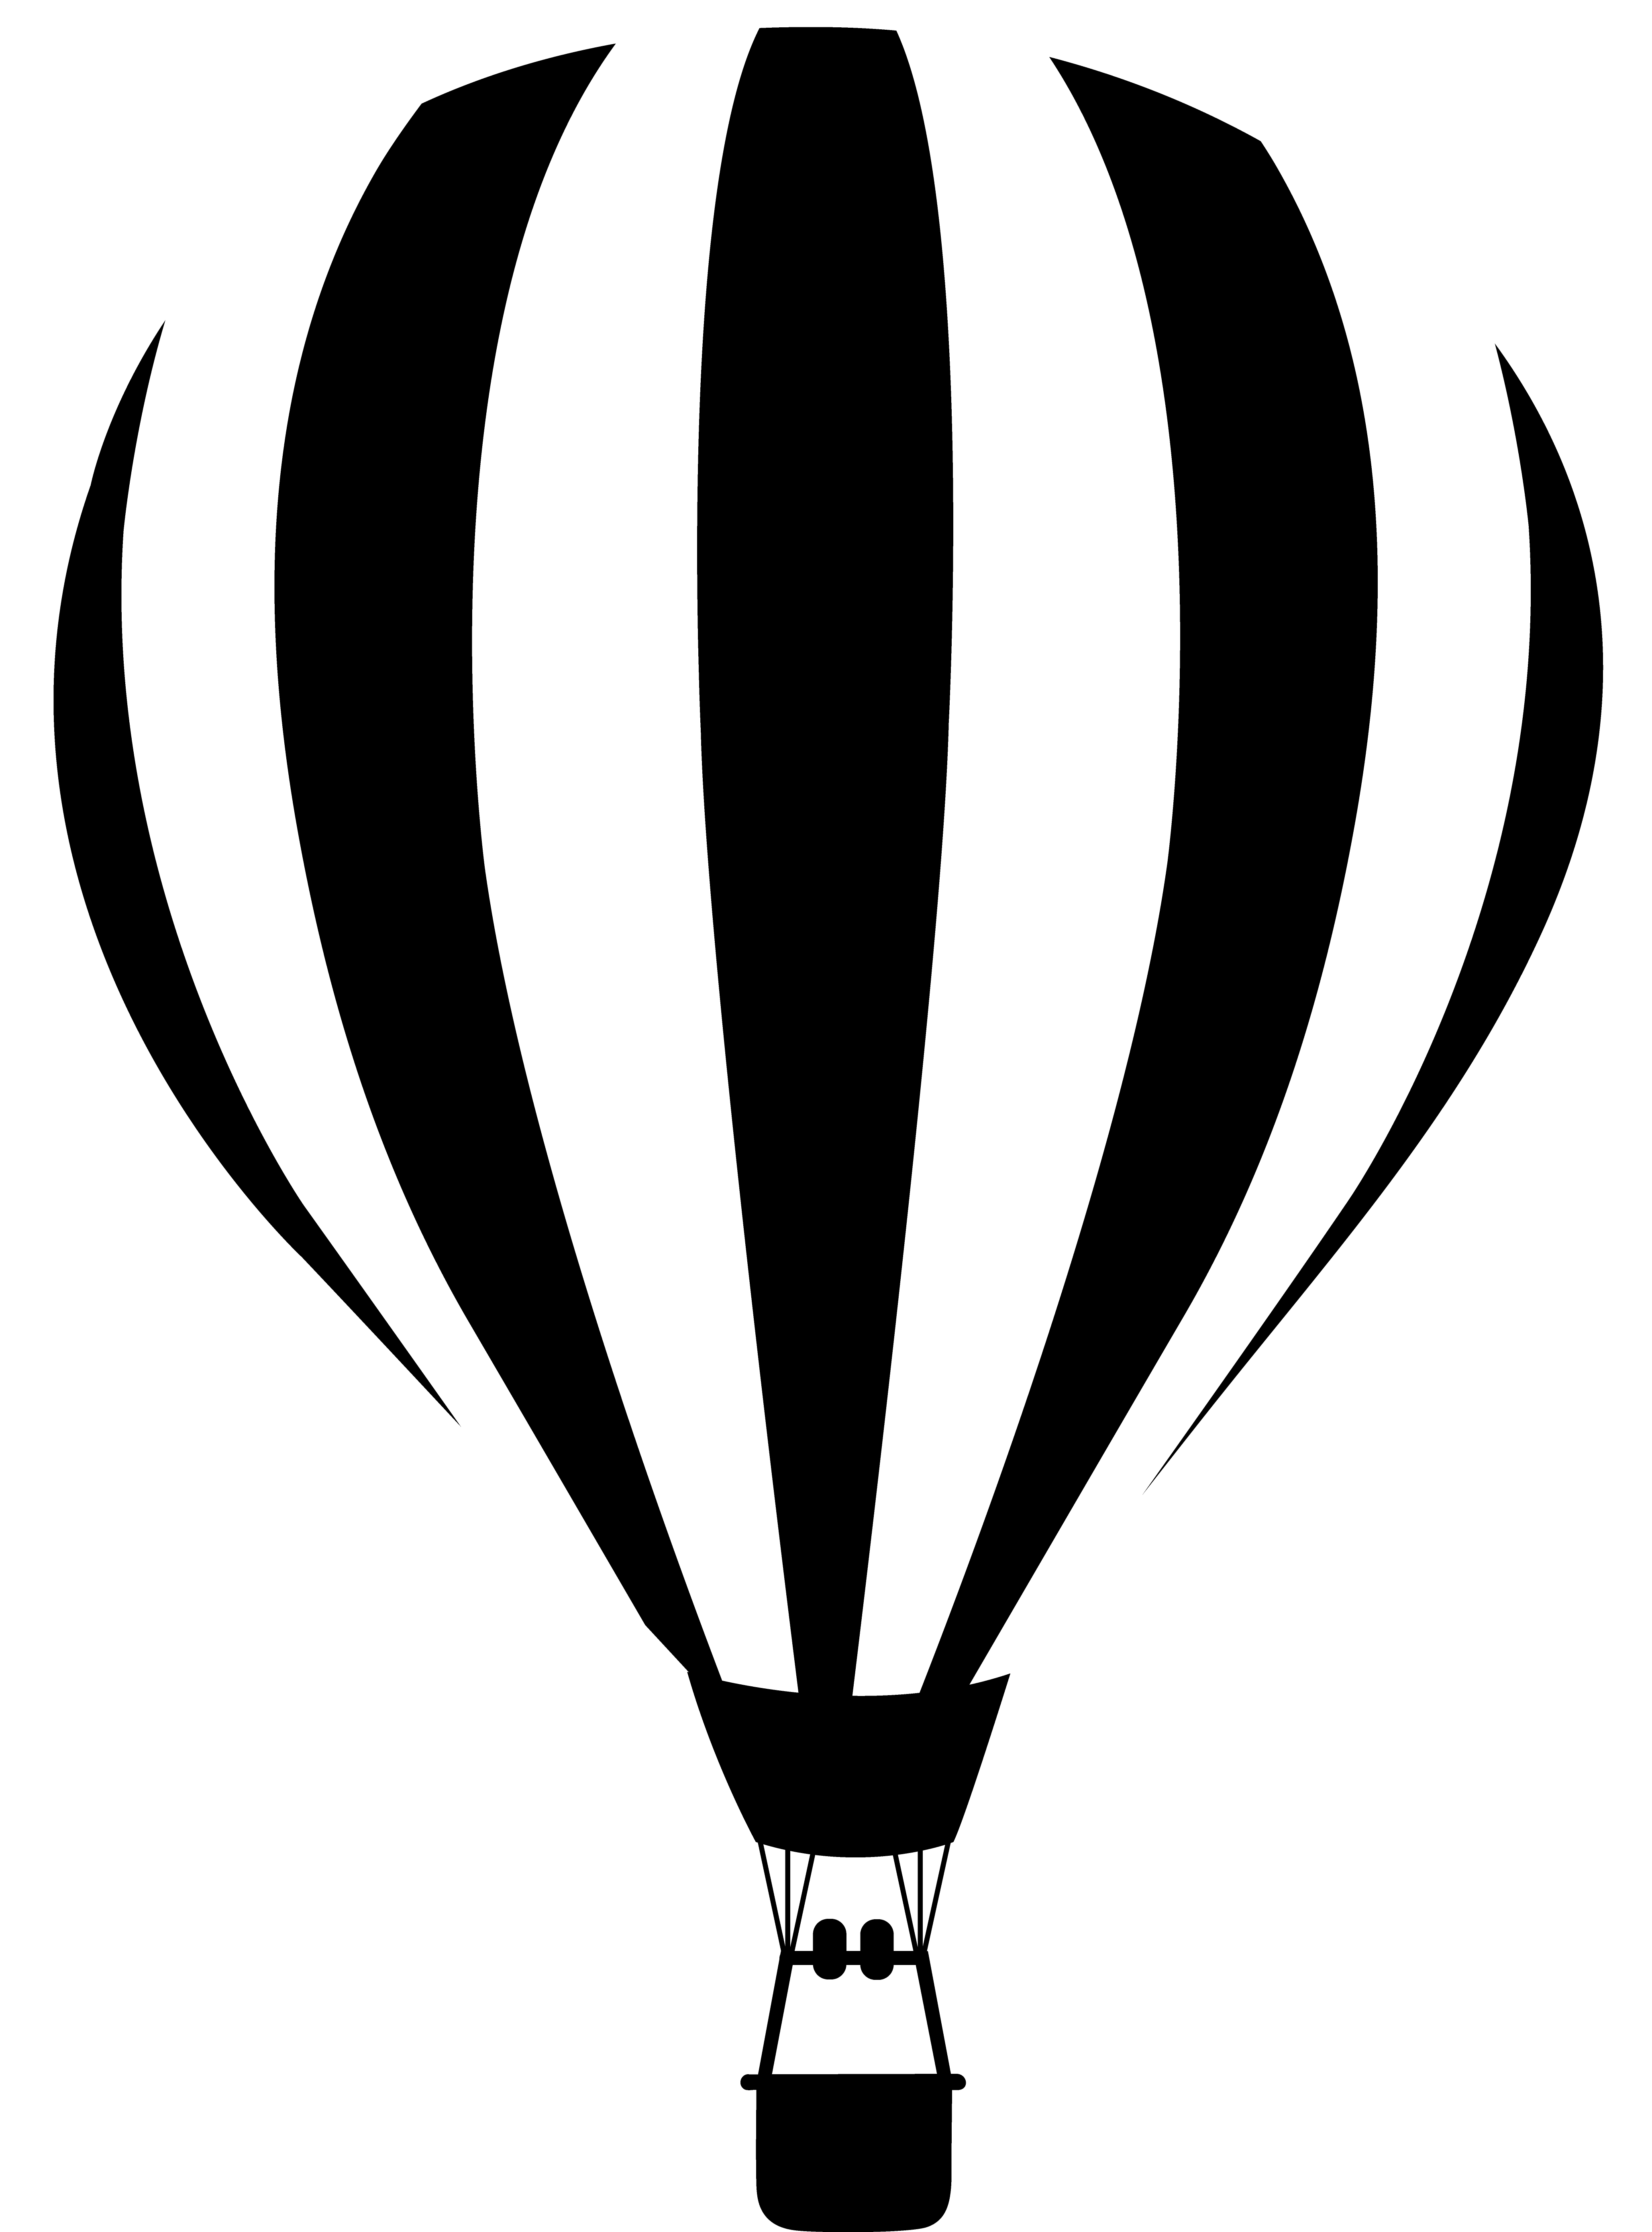 hot air balloon clipart black and white clipart panda free rh clipartpanda com Car Clip Art Black and White Minion Clip Art Black and White